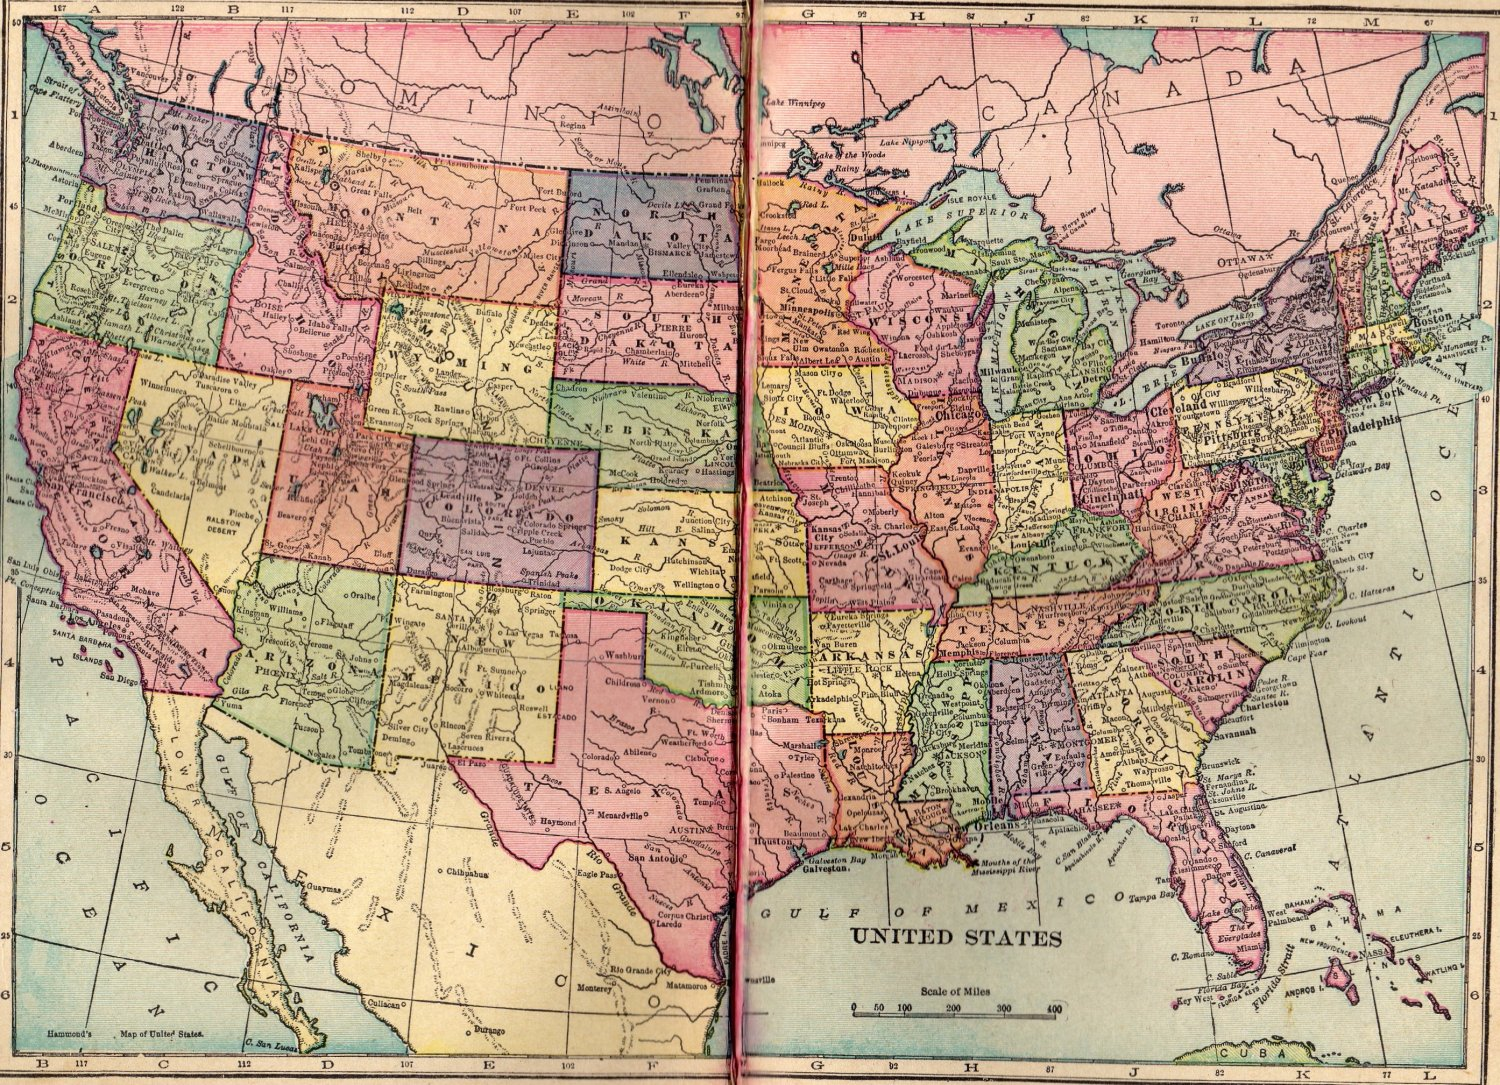 Map of The United States, C.S. Hammond & Co. Atlas, Full Color, Two